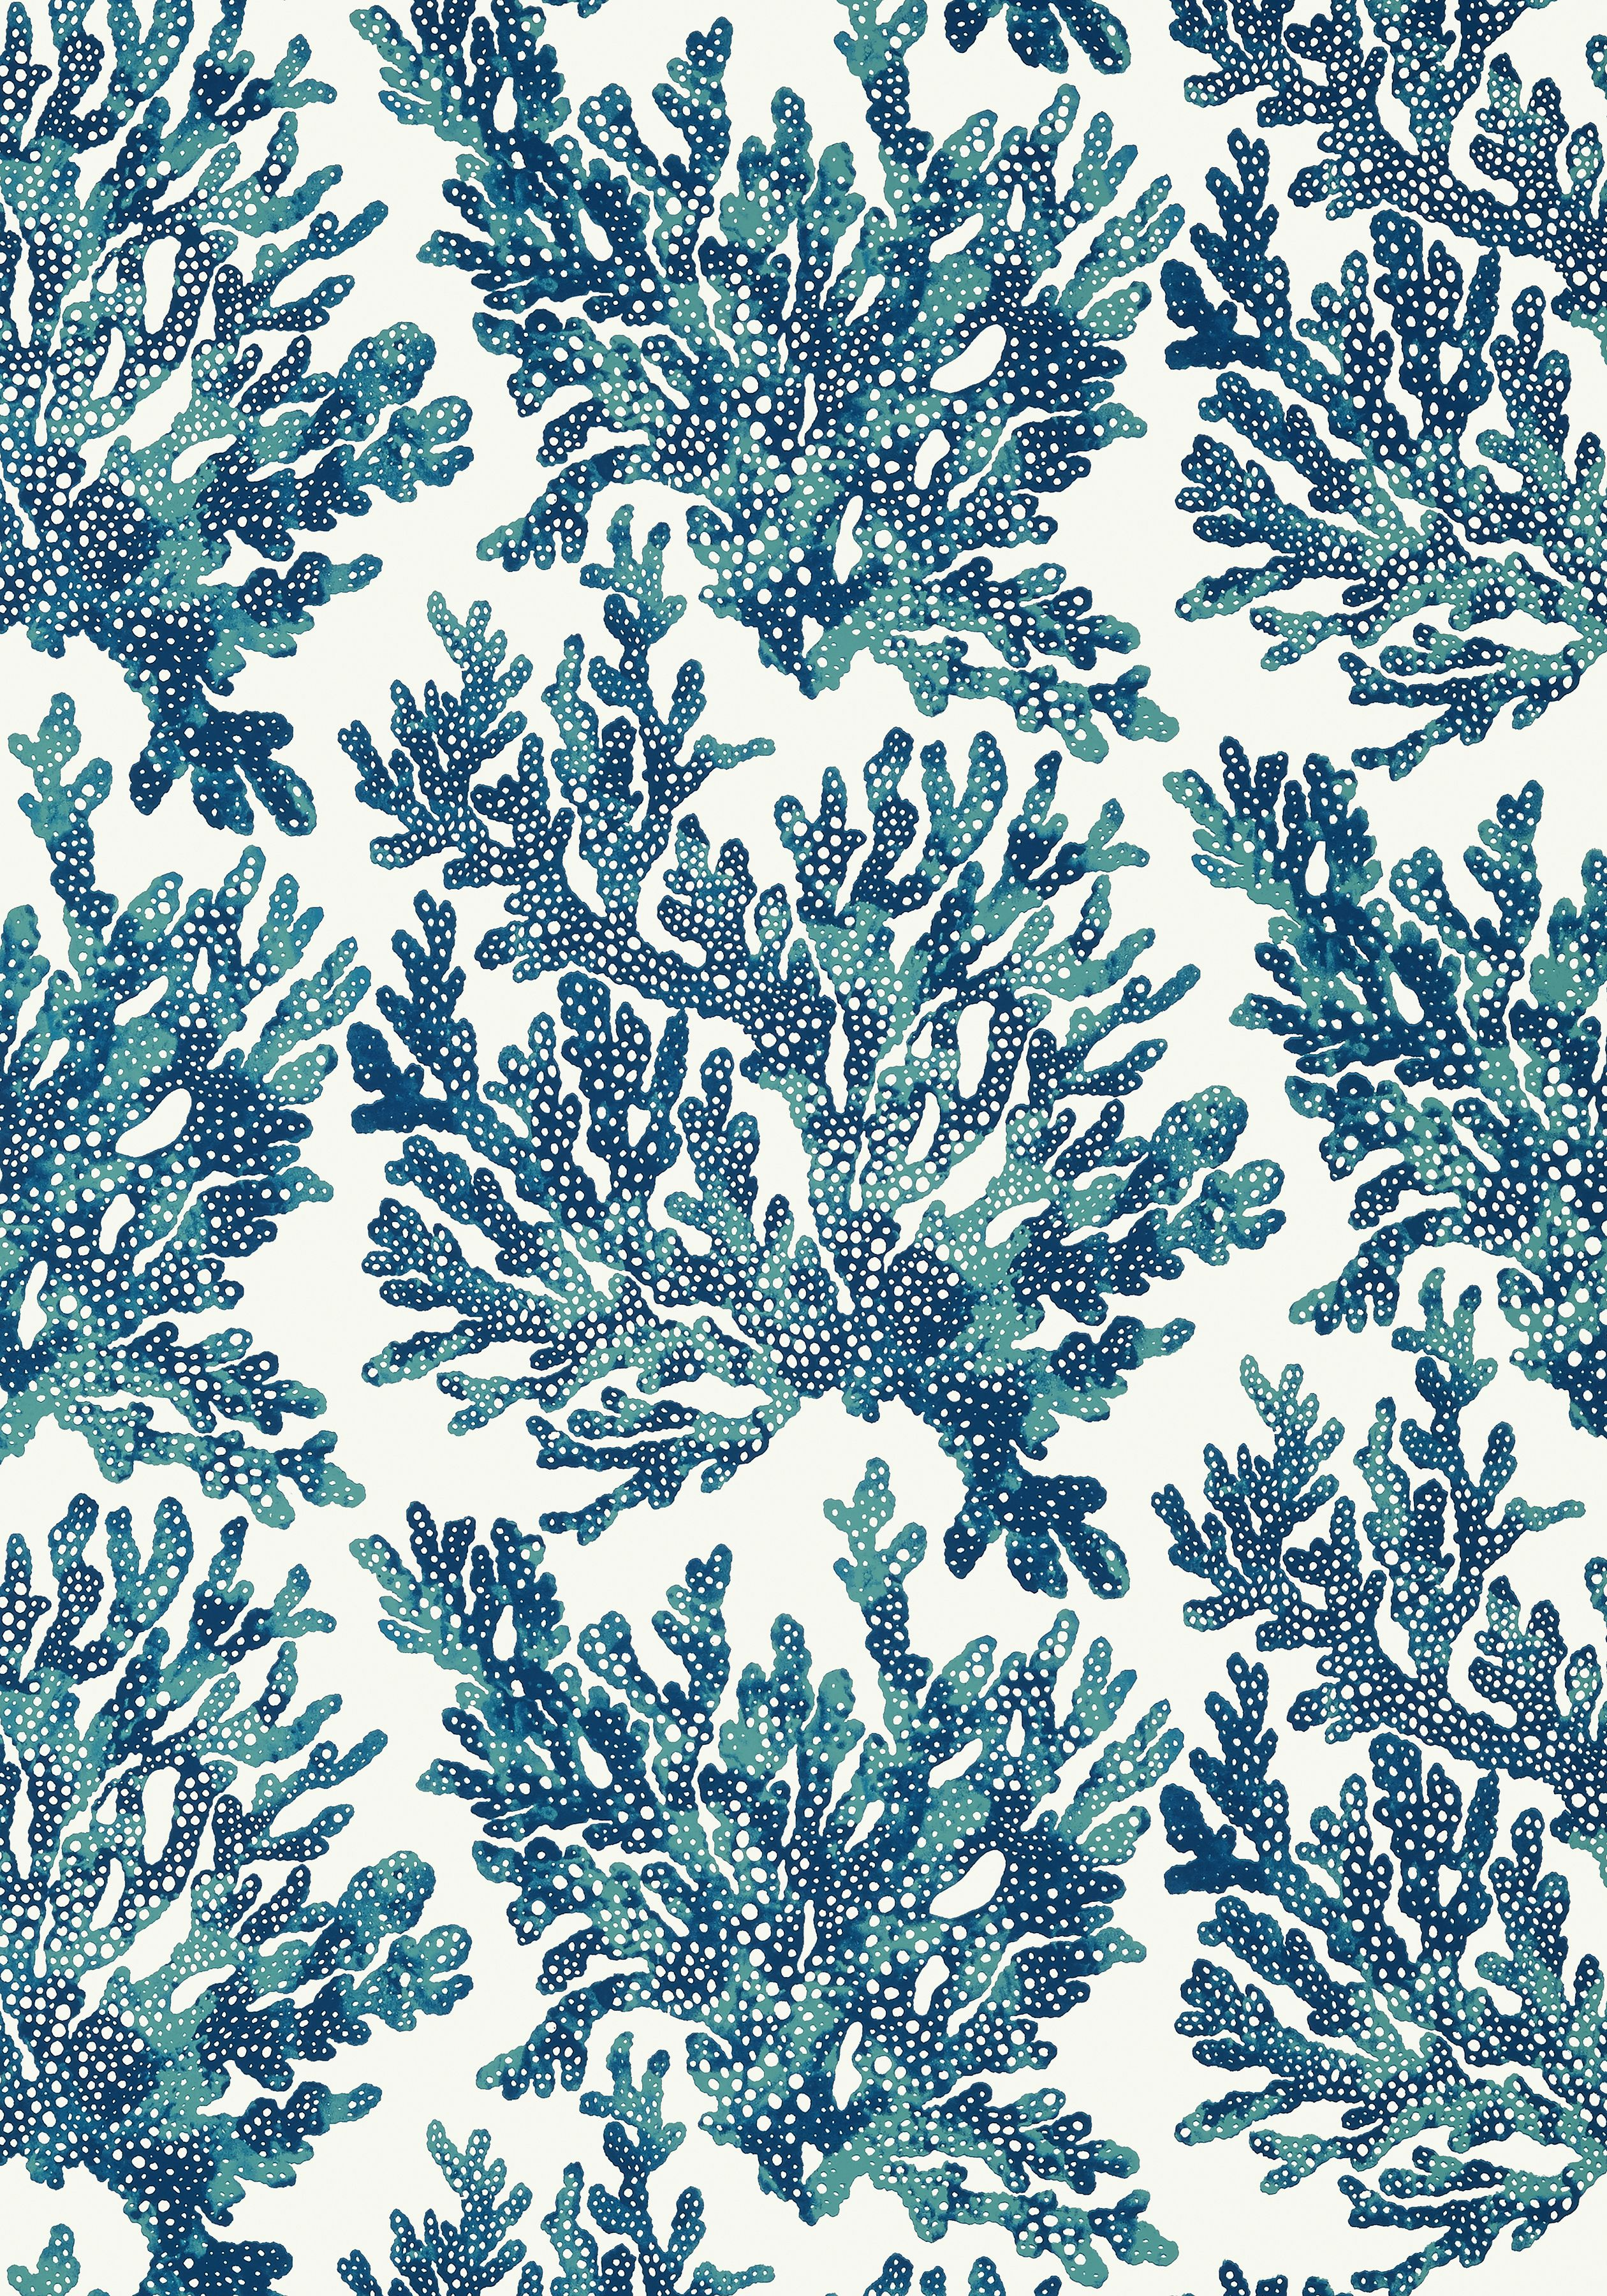 MARINE CORAL, Navy, T10124, Collection Tropics from